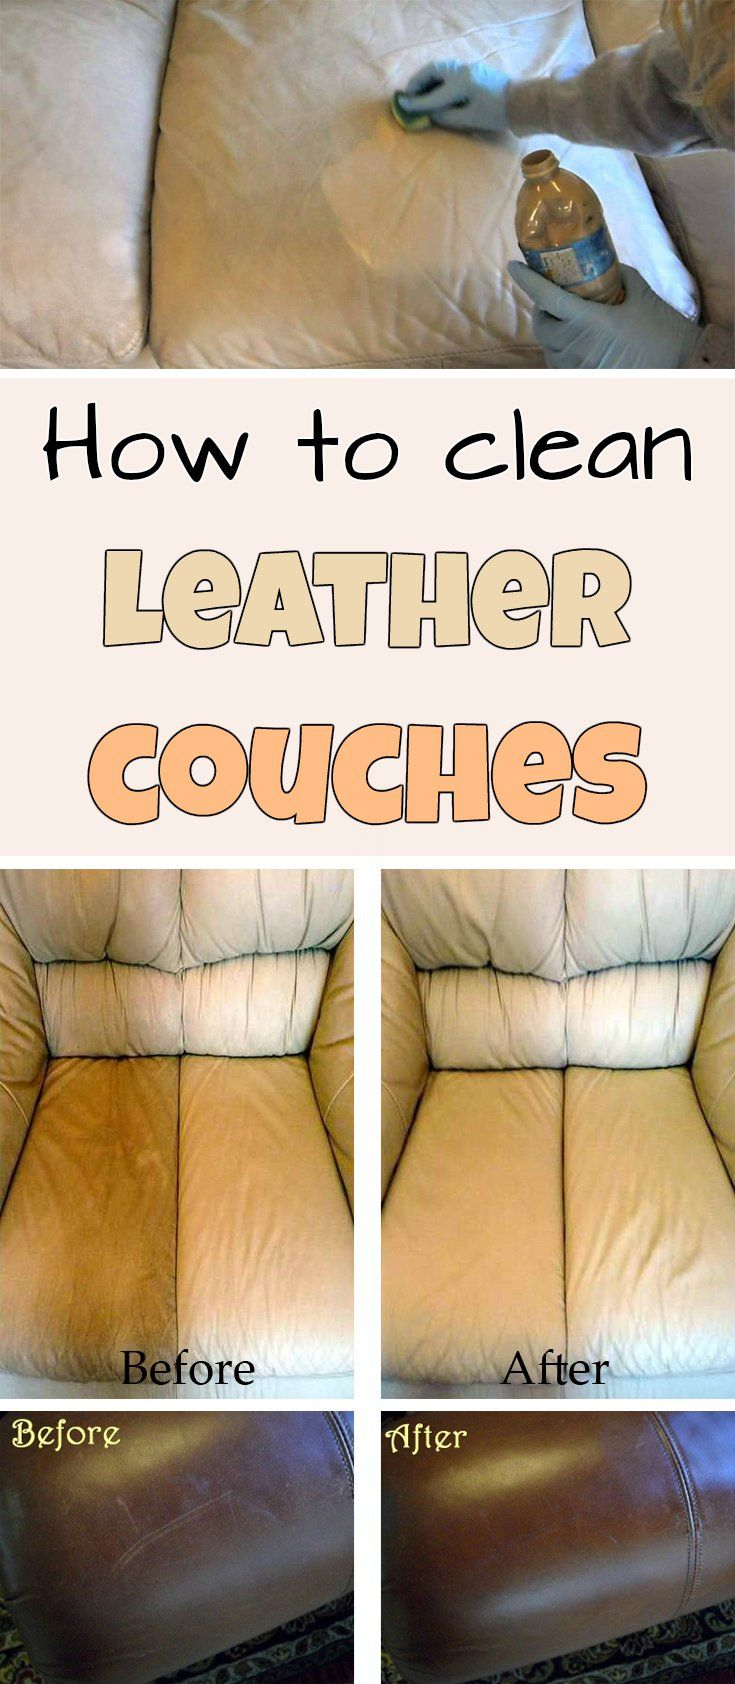 How to clean leather couches - myCleaningSolutions.com